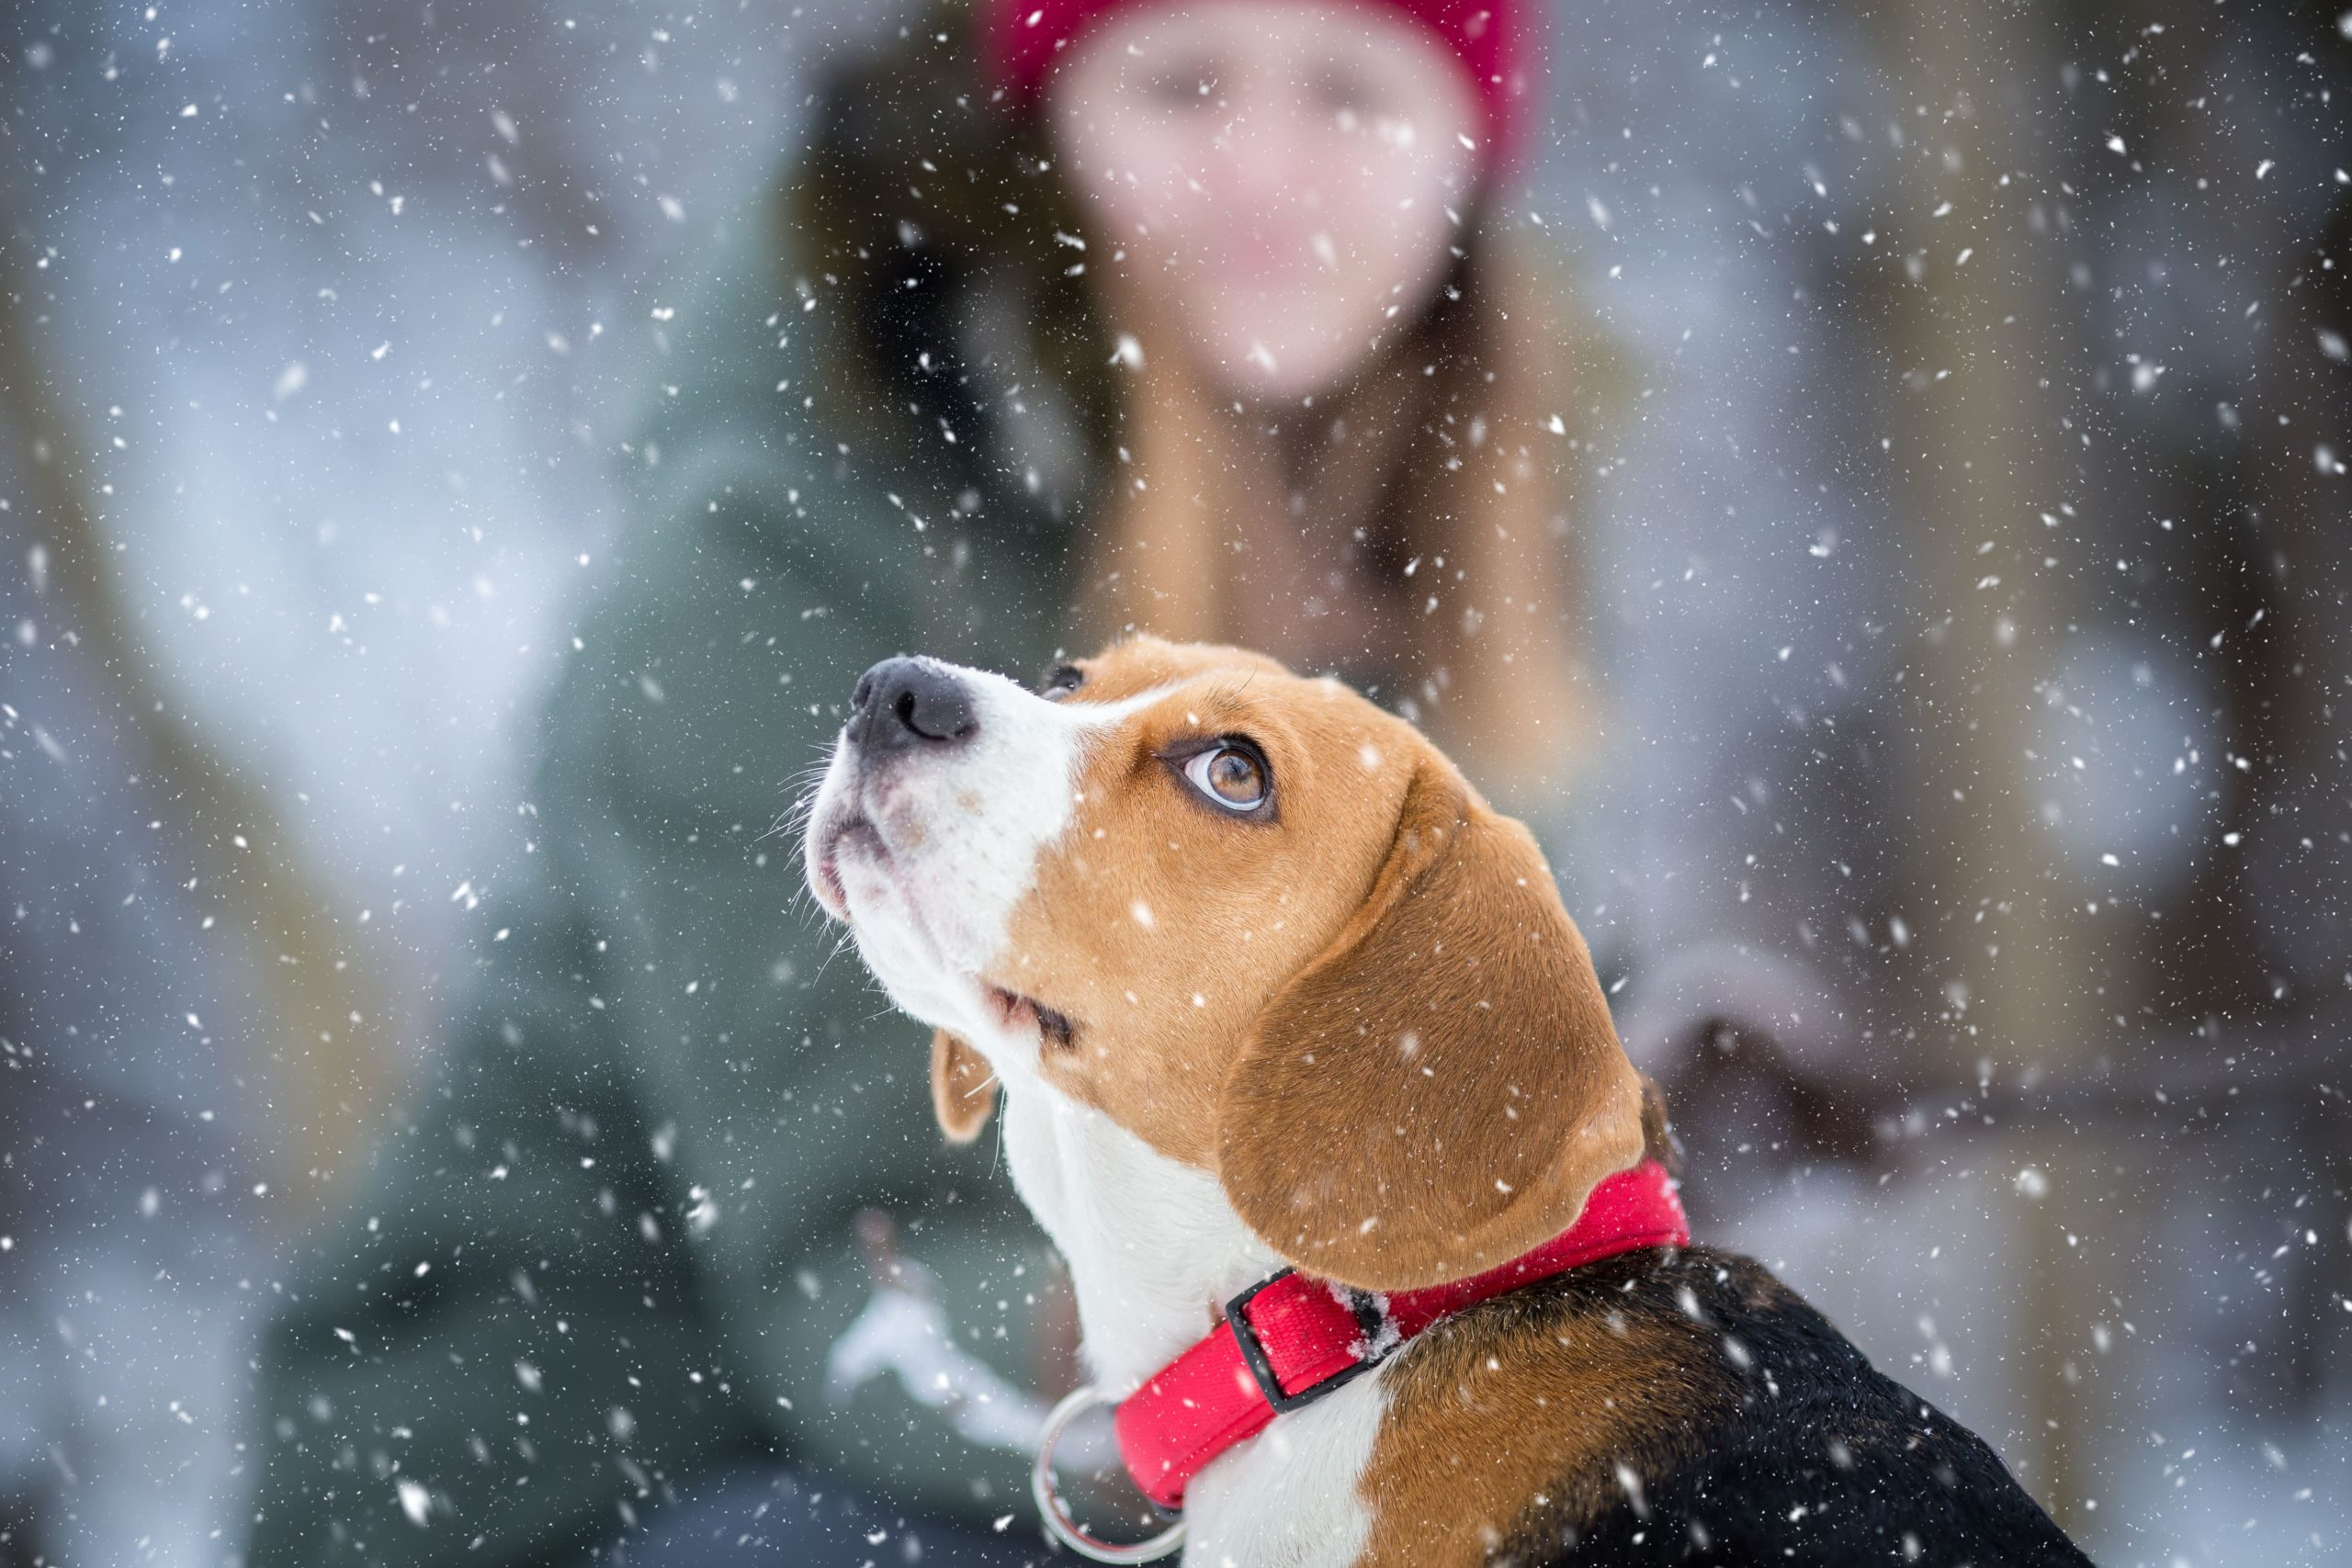 beagle puppy watches snow fall